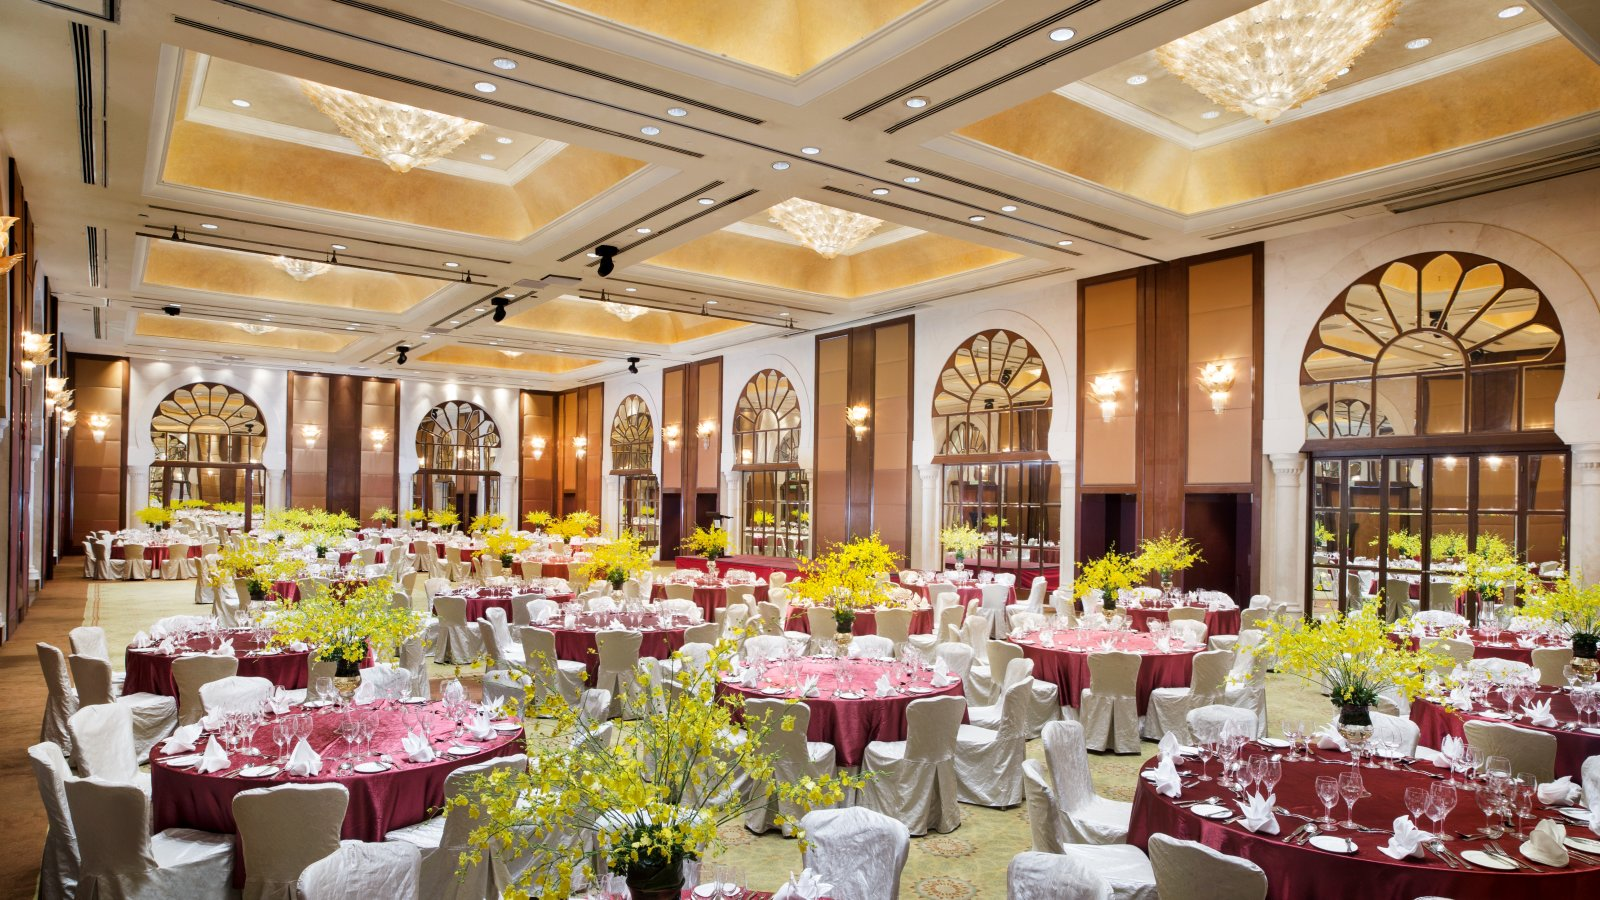 The 10 most expensive places in kl for your wedding dinner sheraton imperial kuala lumpur everlasting wedding package junglespirit Gallery